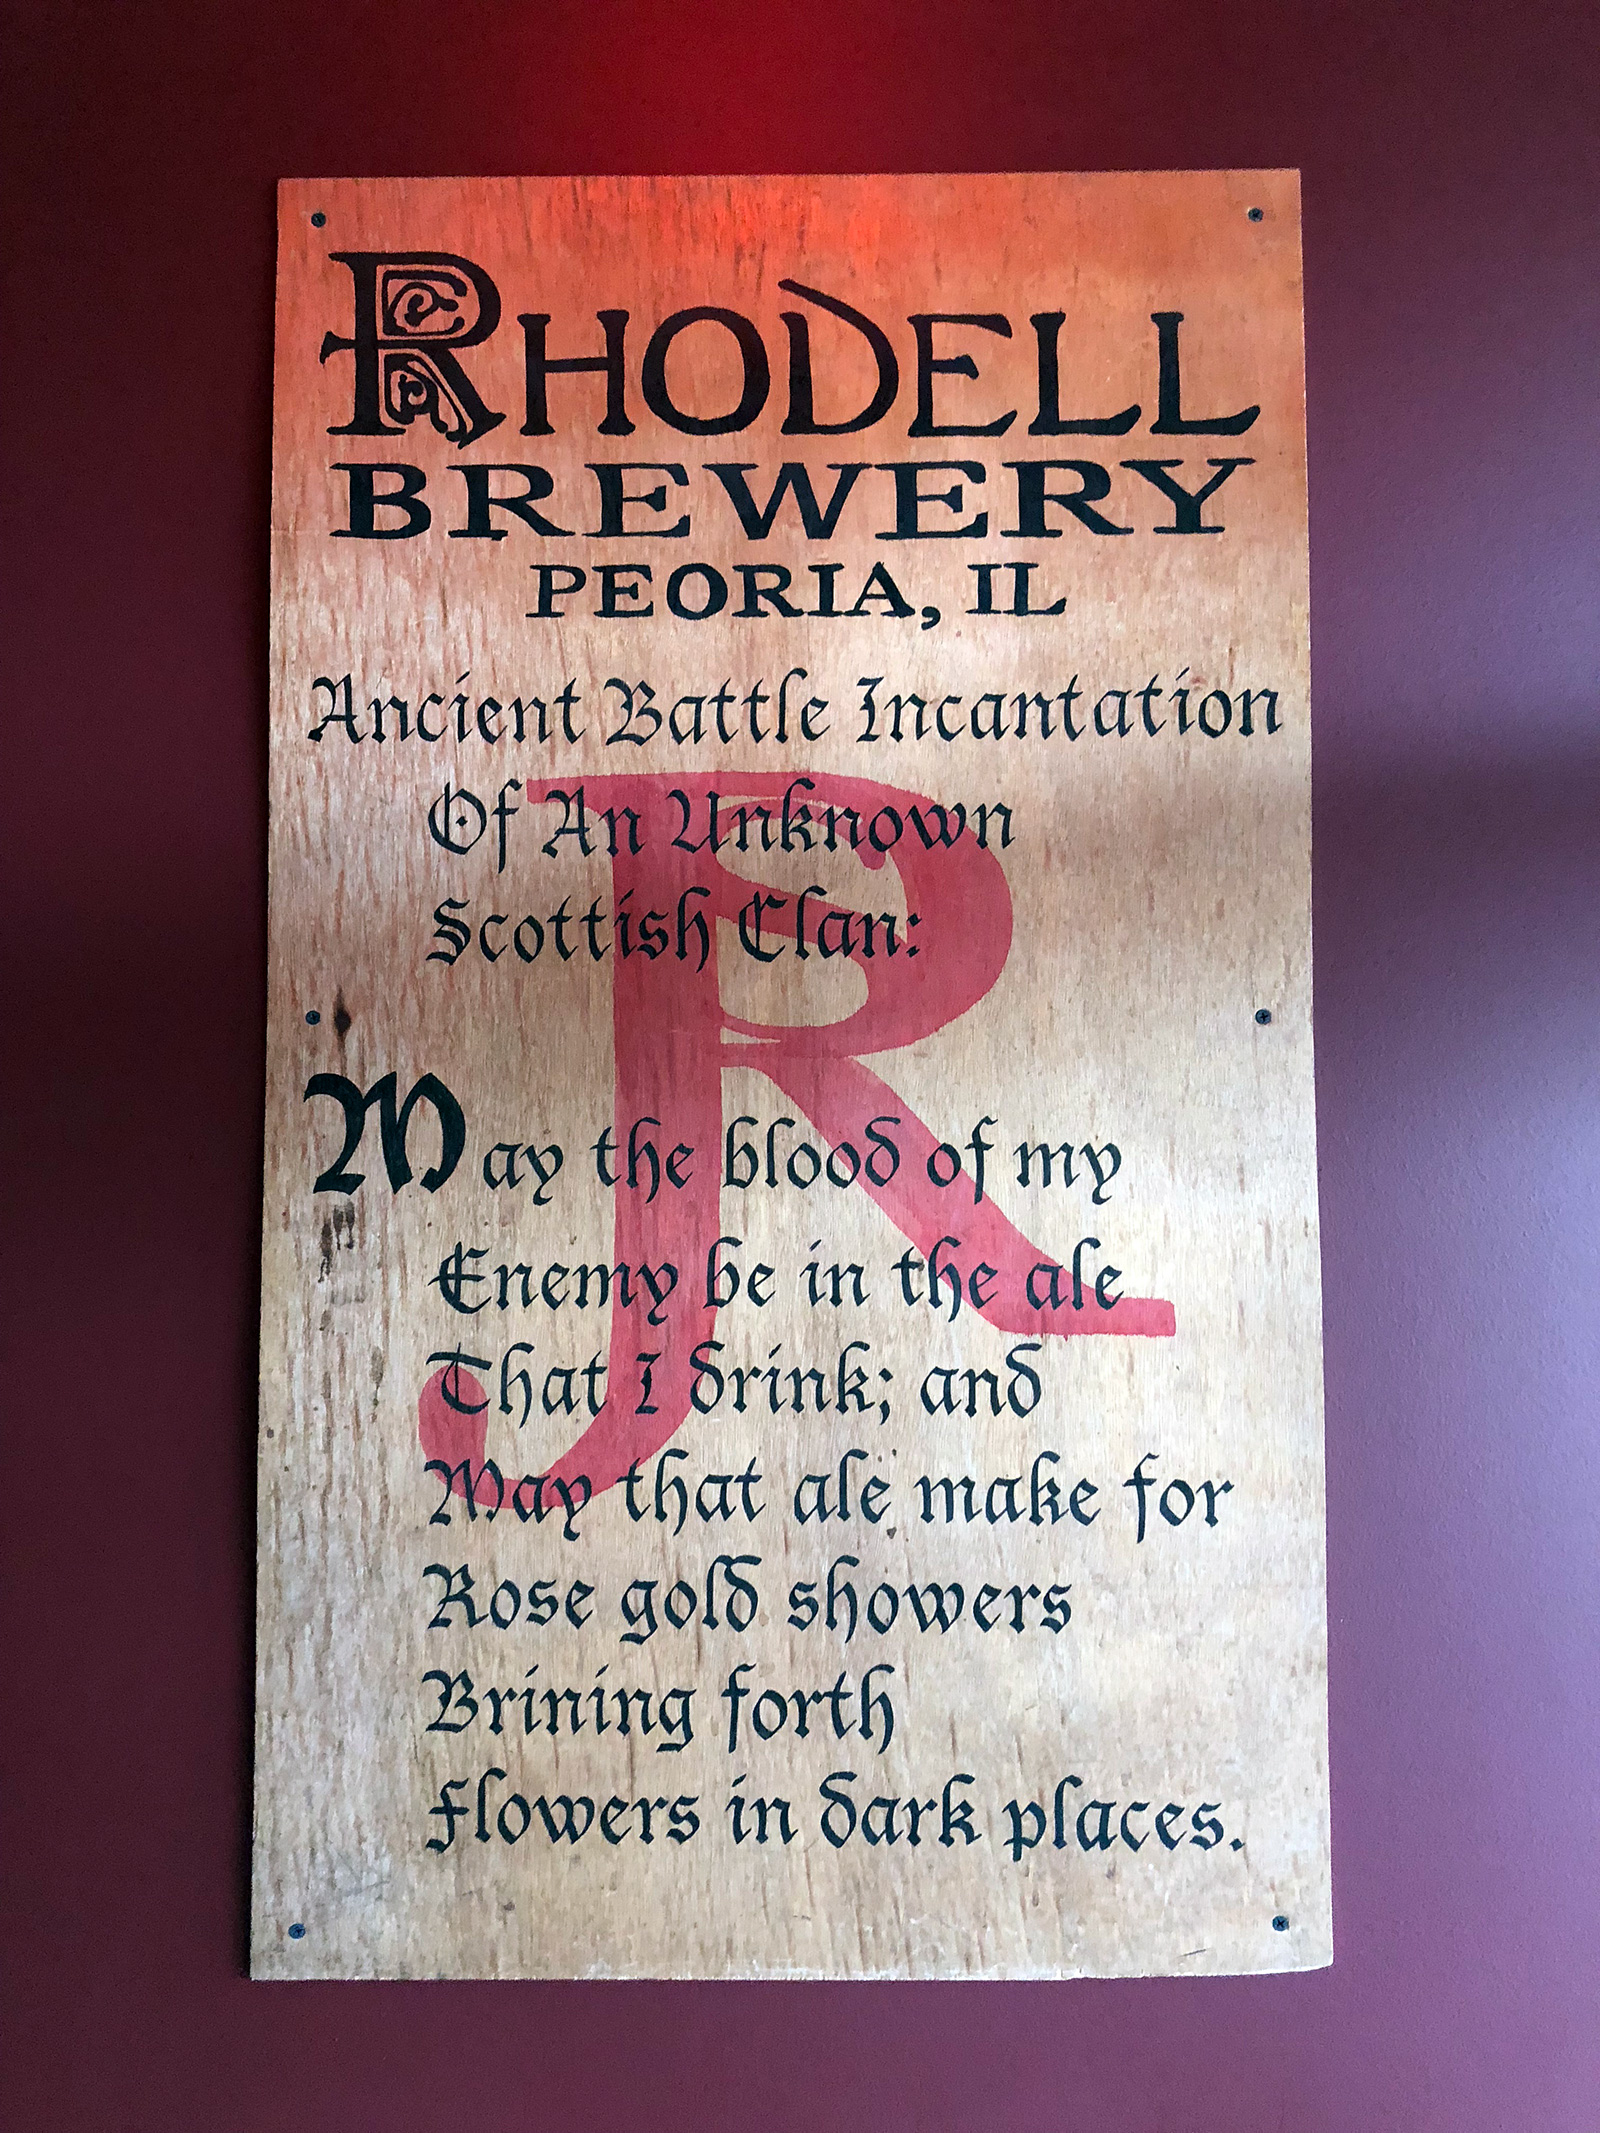 Rhodell Brewery in Peoria, IL by Jets Like Taxis / Hopsmash